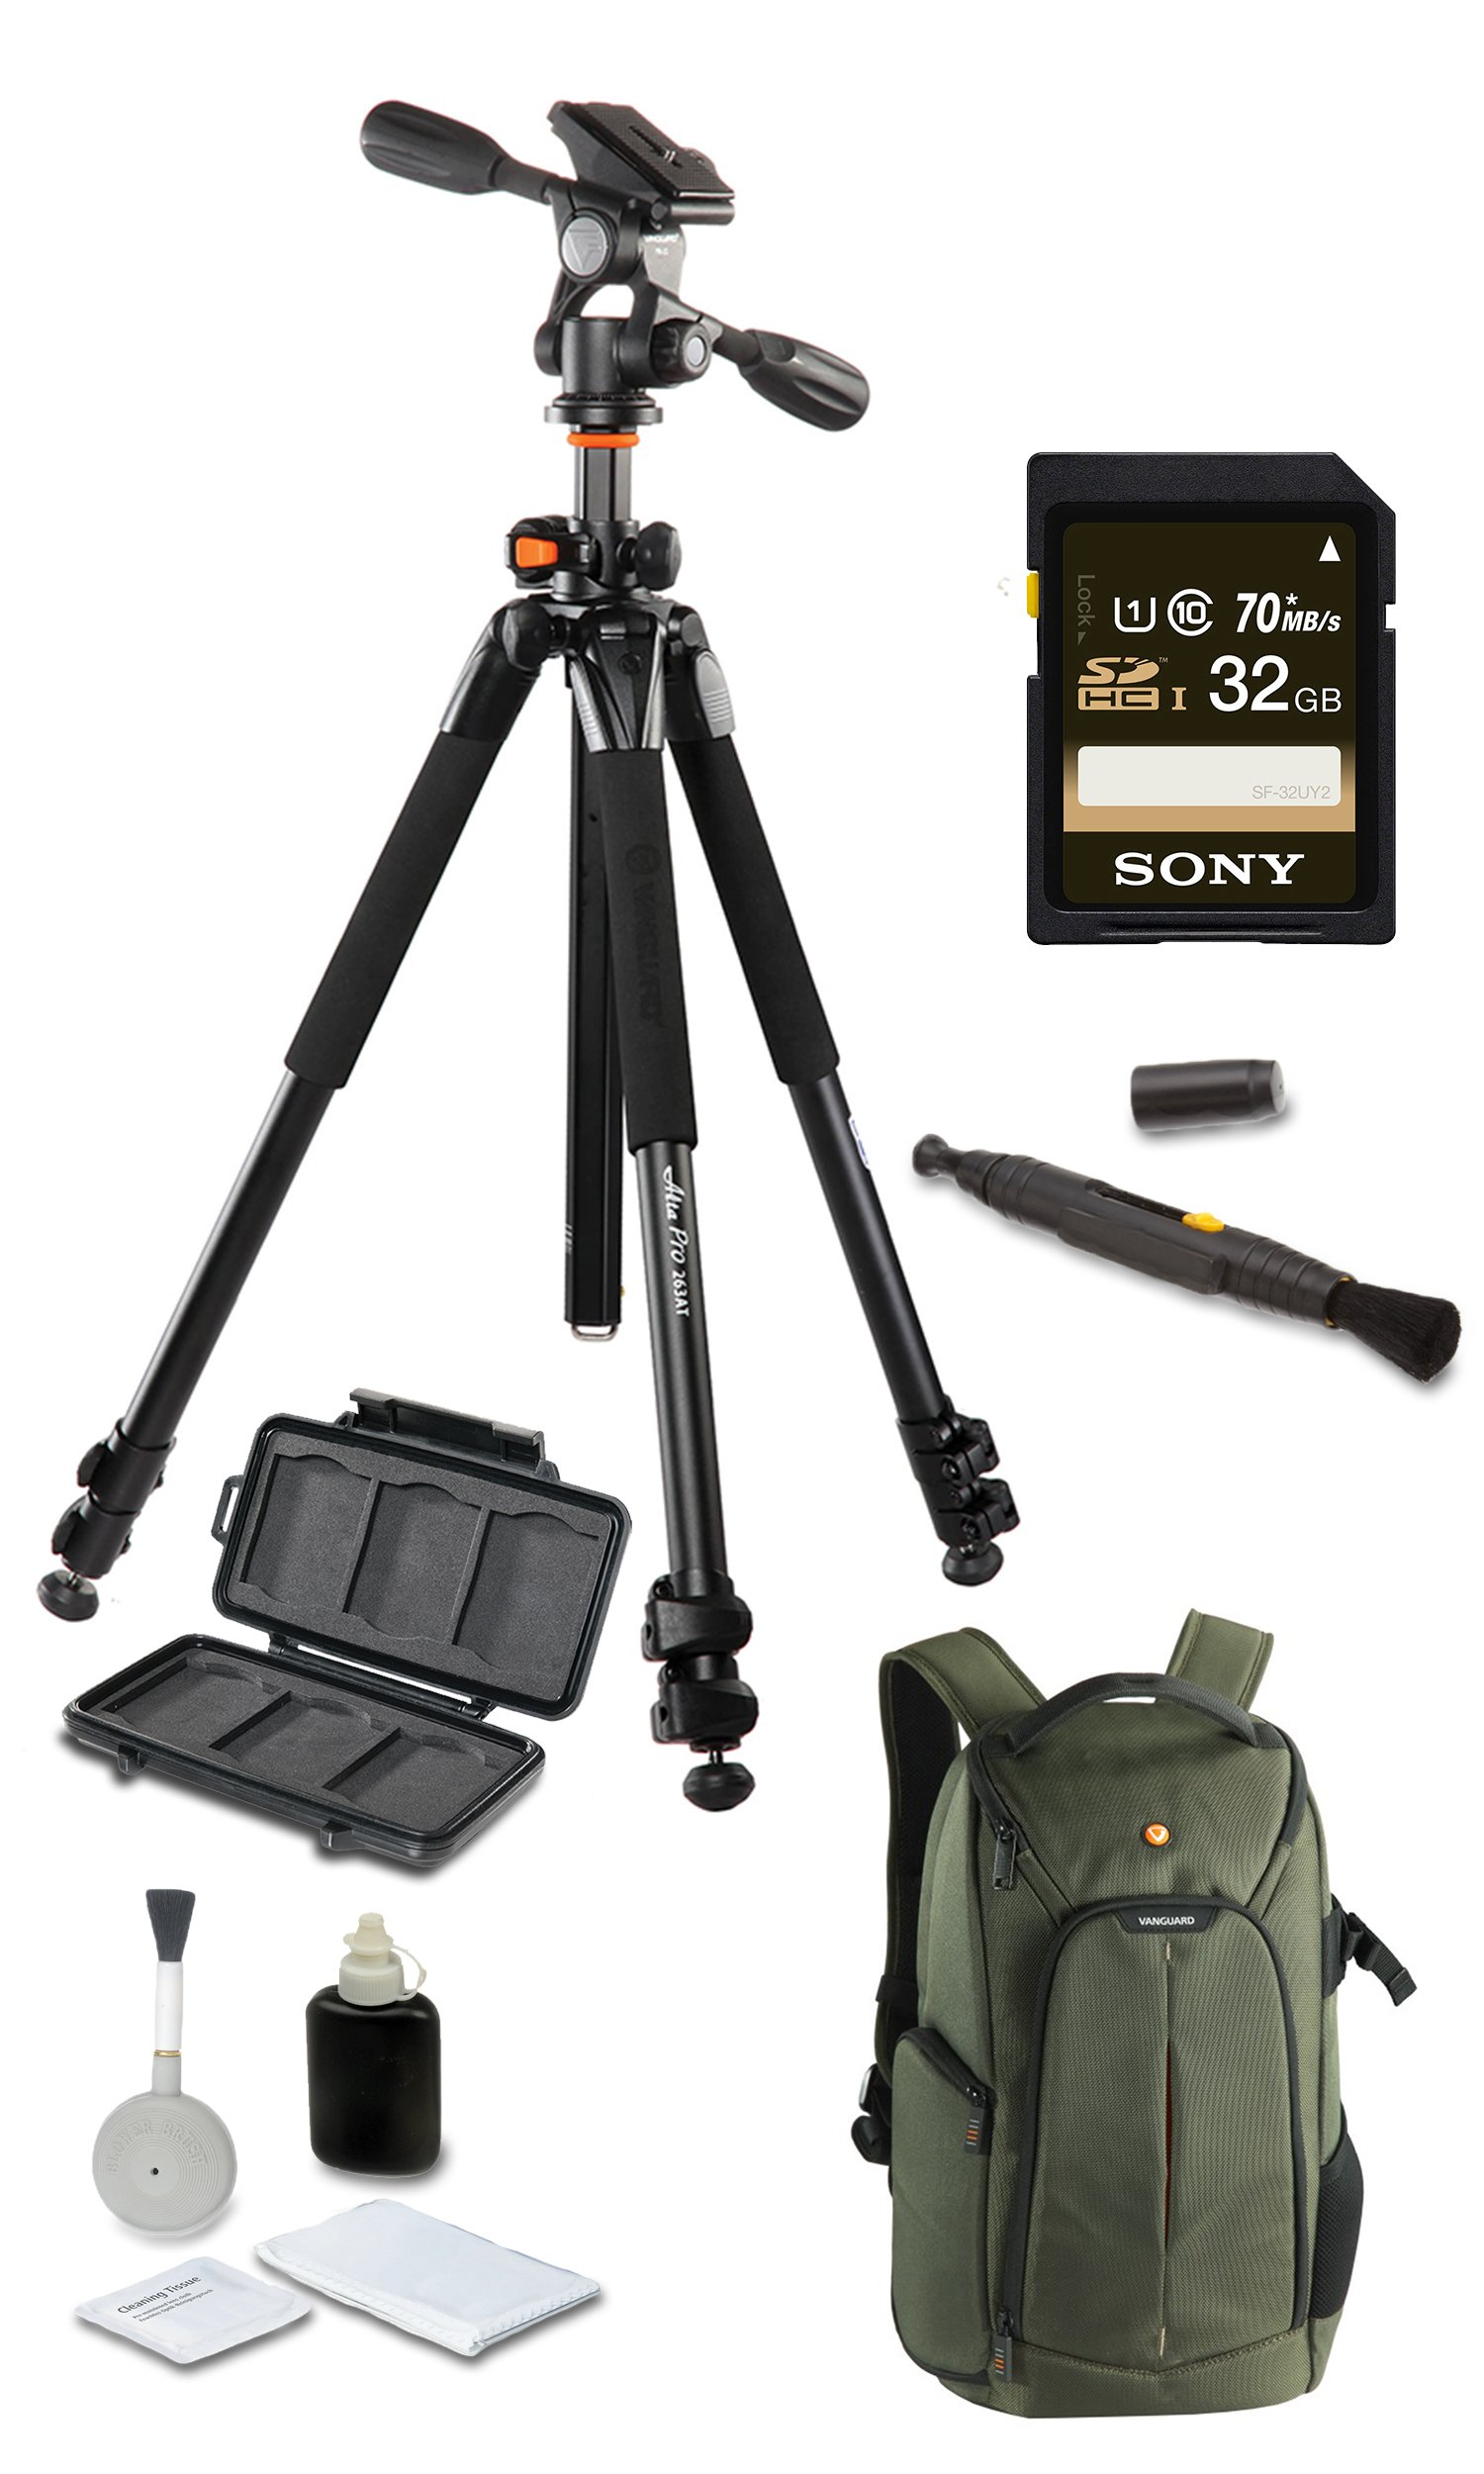 Vanguard Alta Pro 263AP Deluxe Bundle + Vanguard 2GO 46GR + SONY 32GB SD Card + Cleaning Kit 4pc + Lens Pen Cleaning Brush + Memory Card Wallet + Much More!